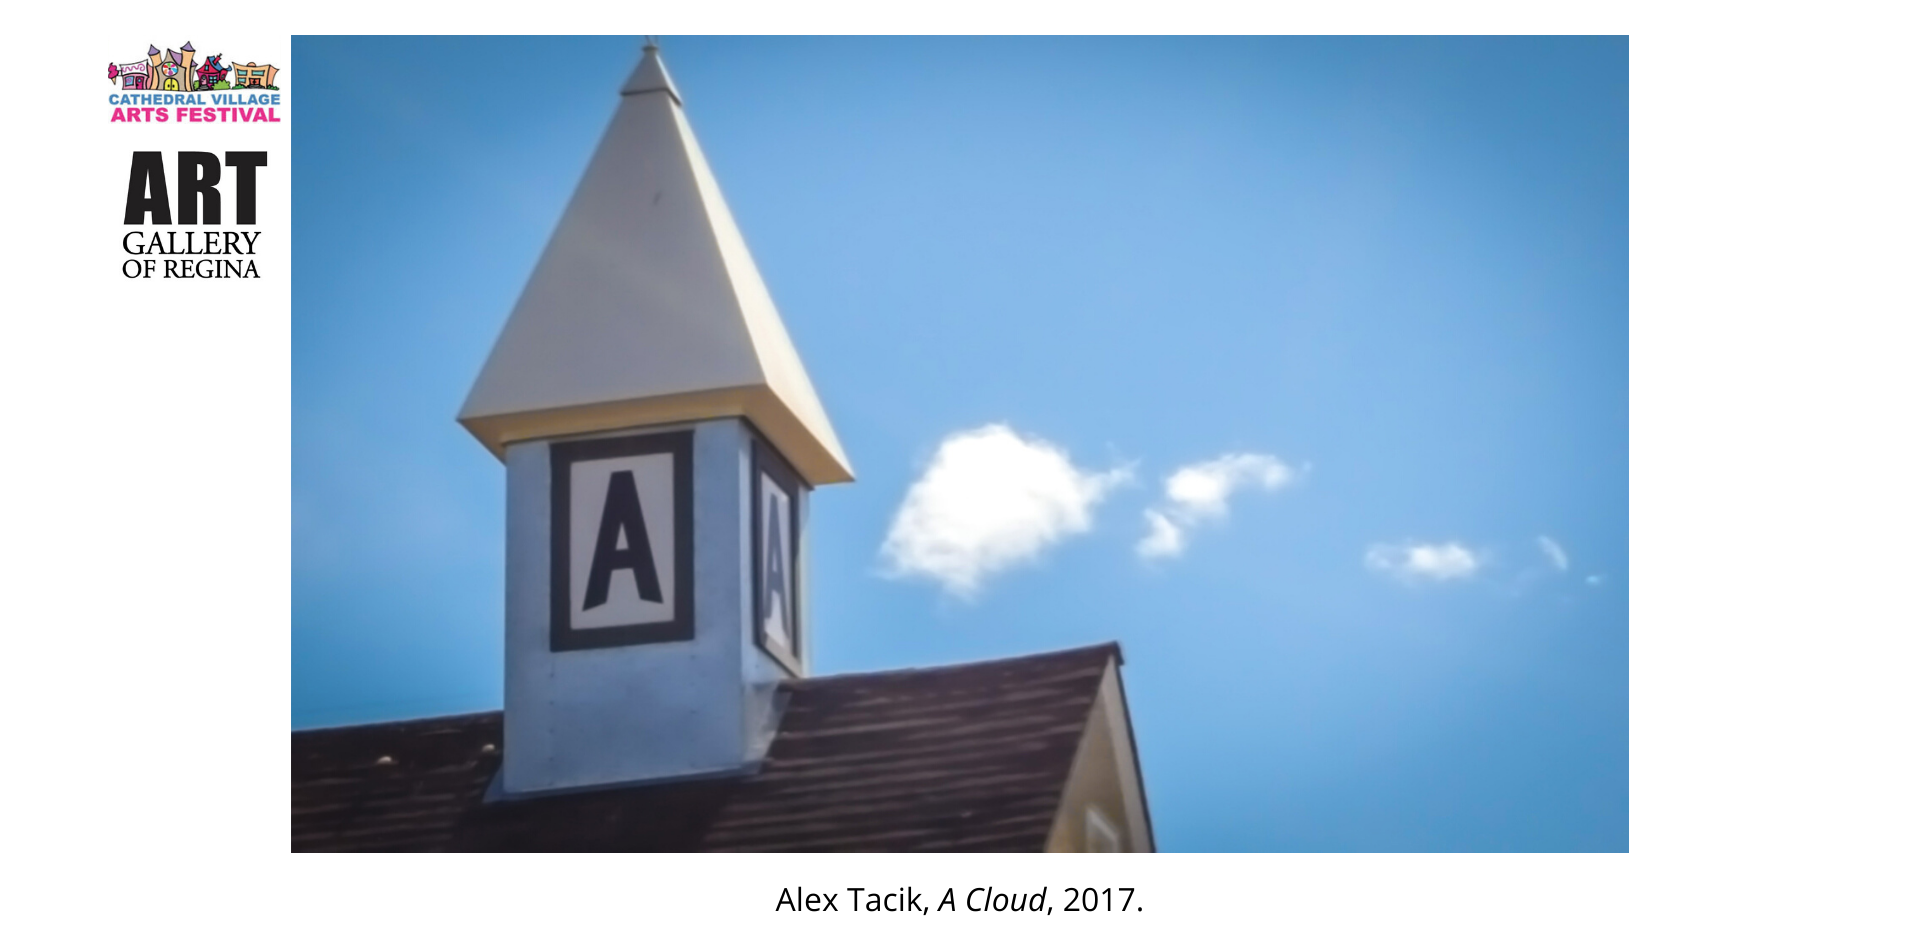 Alex Tacik, A Cloud, 2017.